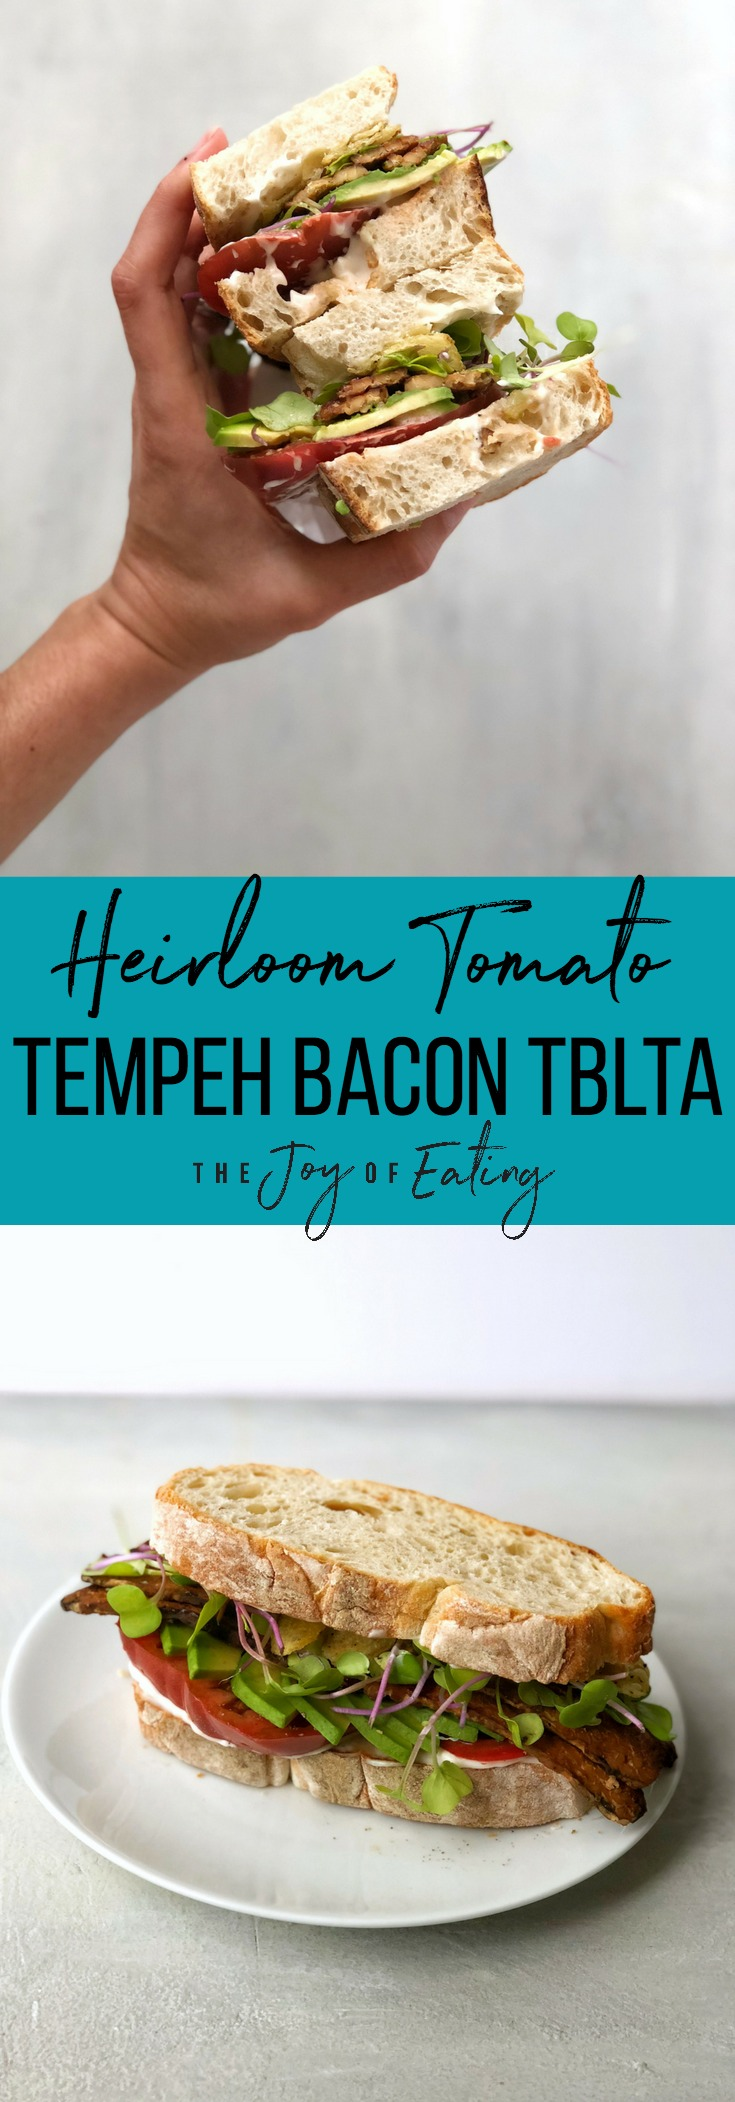 The most perfect summer tomato sandwich! Make this heirloom tomato tempeh bacon TBLTA, topped with avocado, smokey tempeh bacon, and crunchy salt and pepper kettle chips! #sandwich #summer #vegetarian #vegan #easyrecipe #tomato